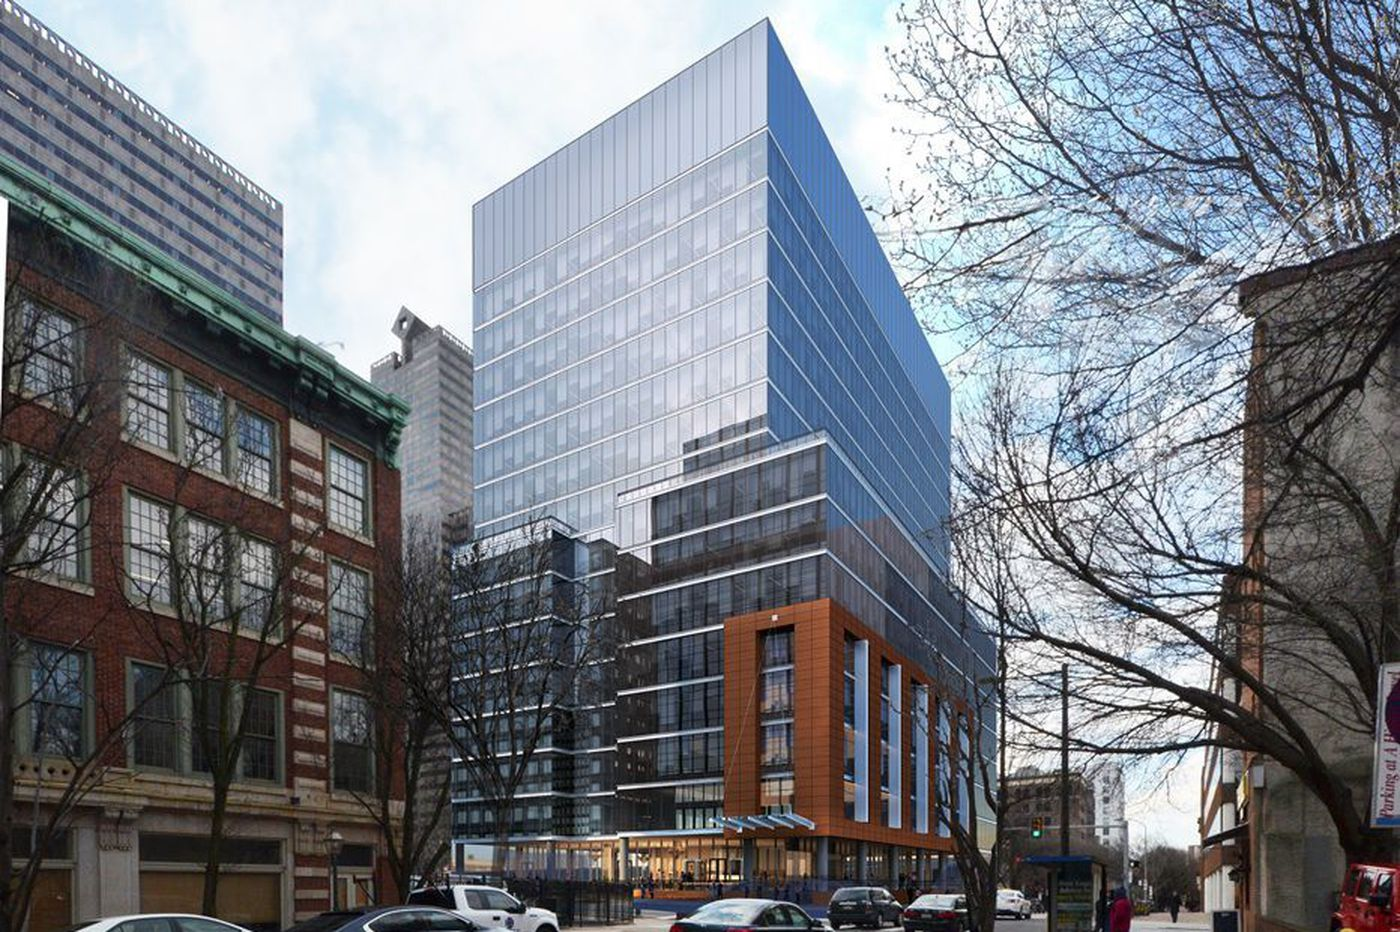 Neighborhood approval could clear way for Philly's first new Center City headquarters building since Comcast